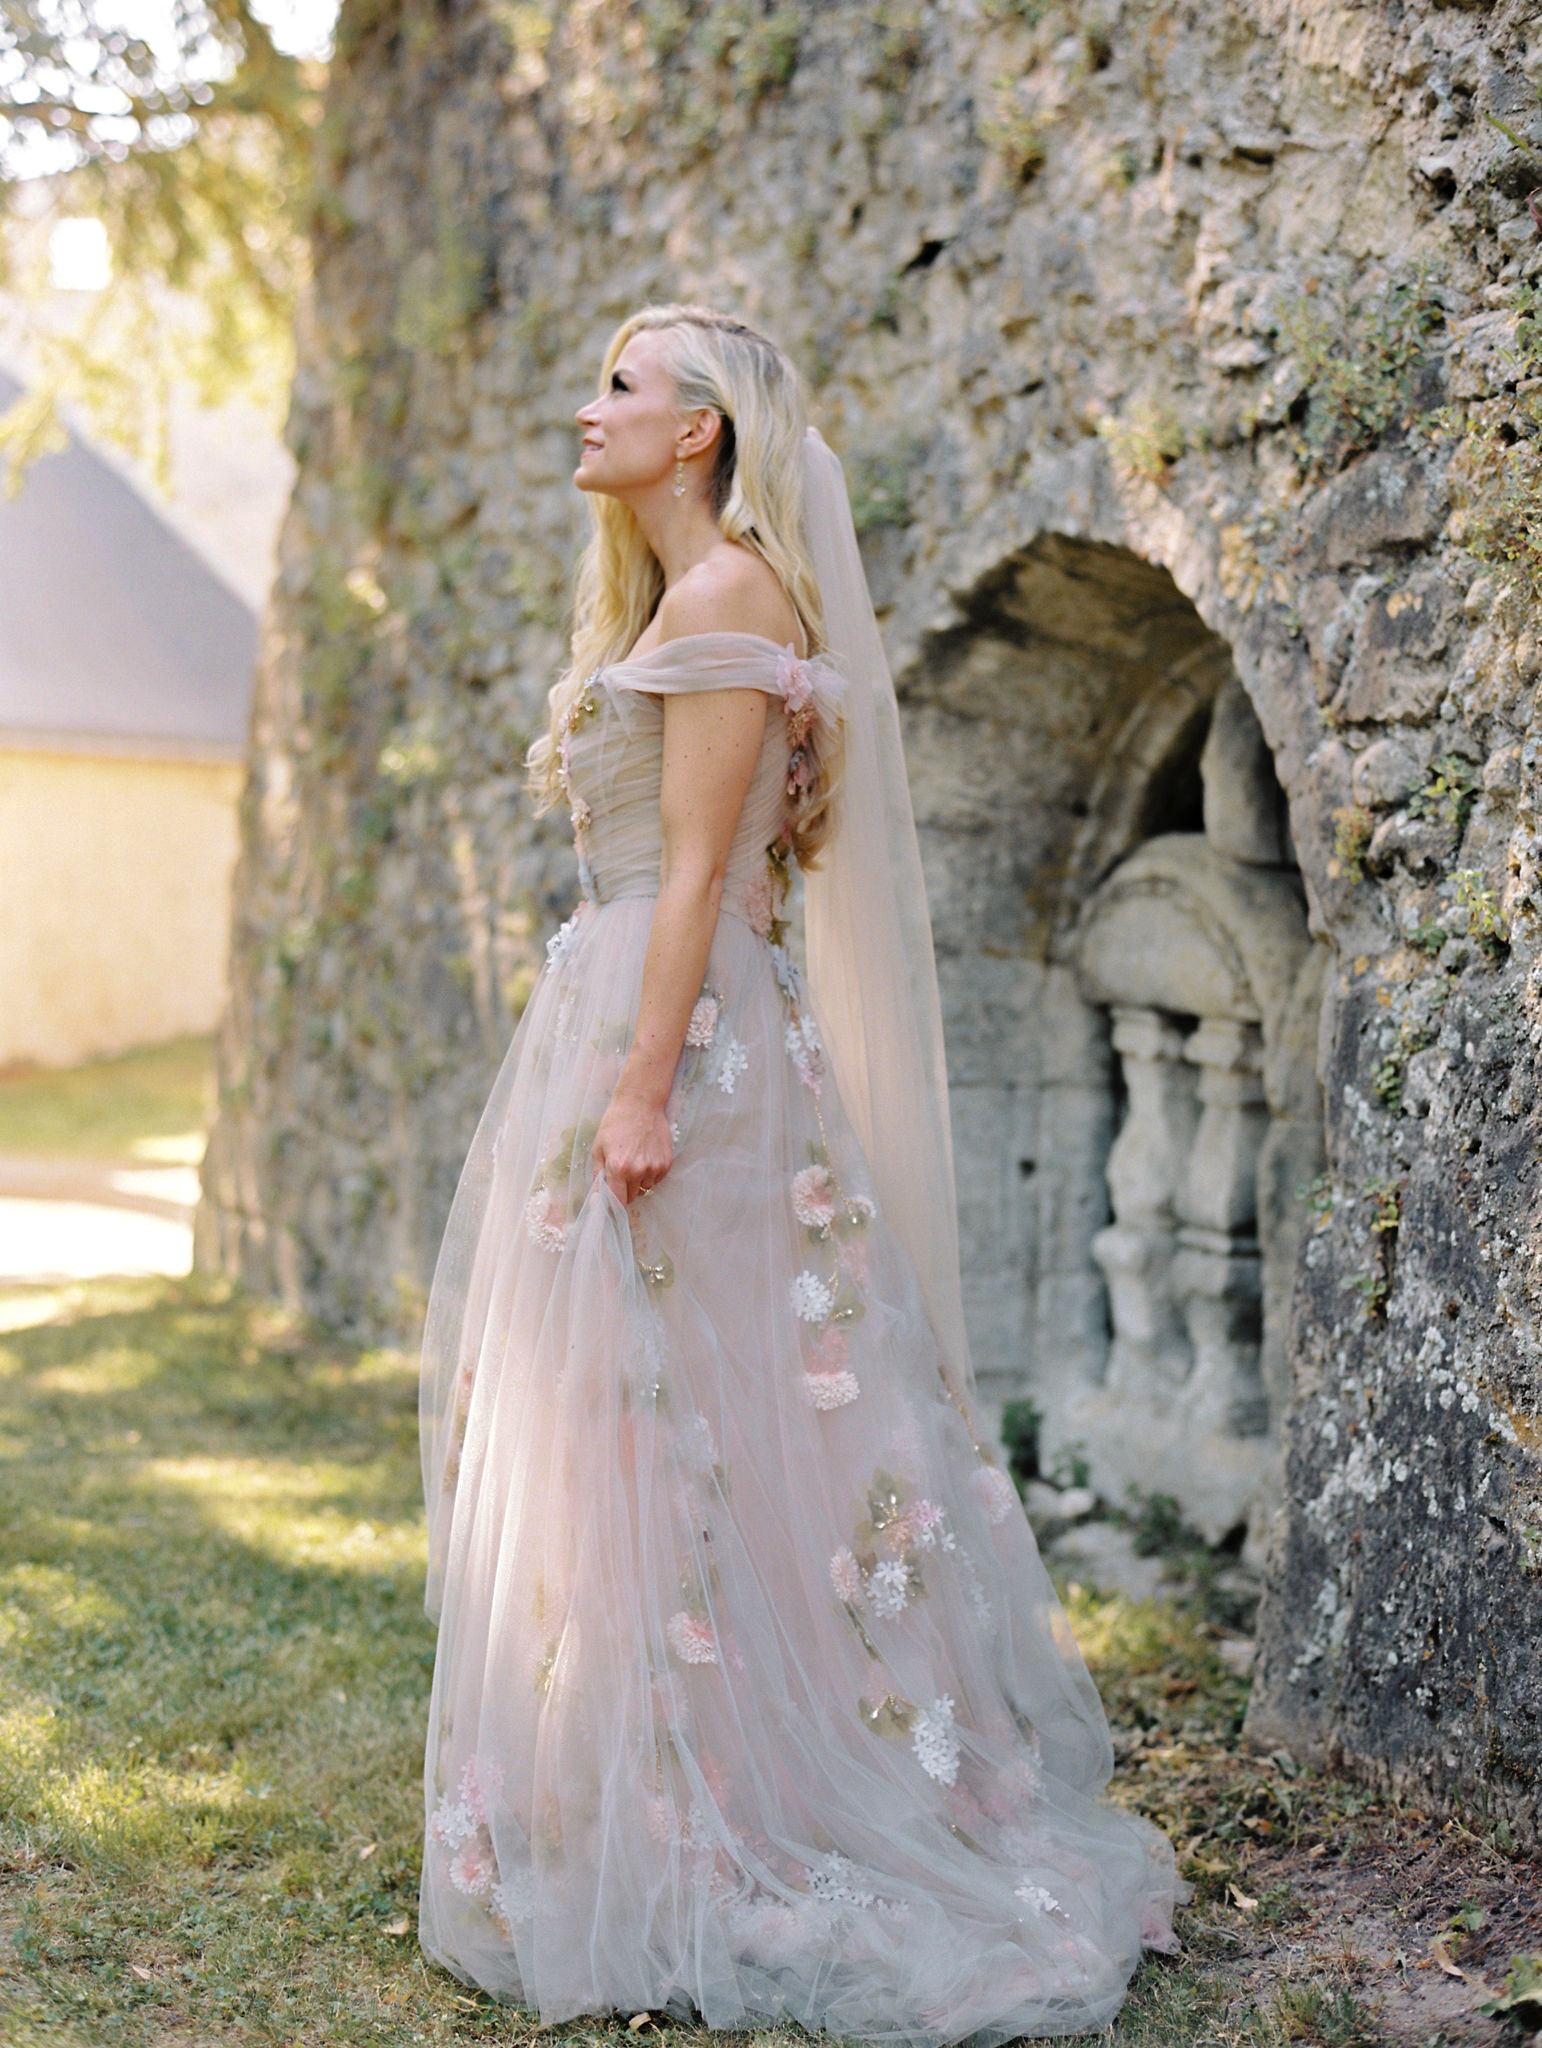 portrait bride profile in front of old stone building